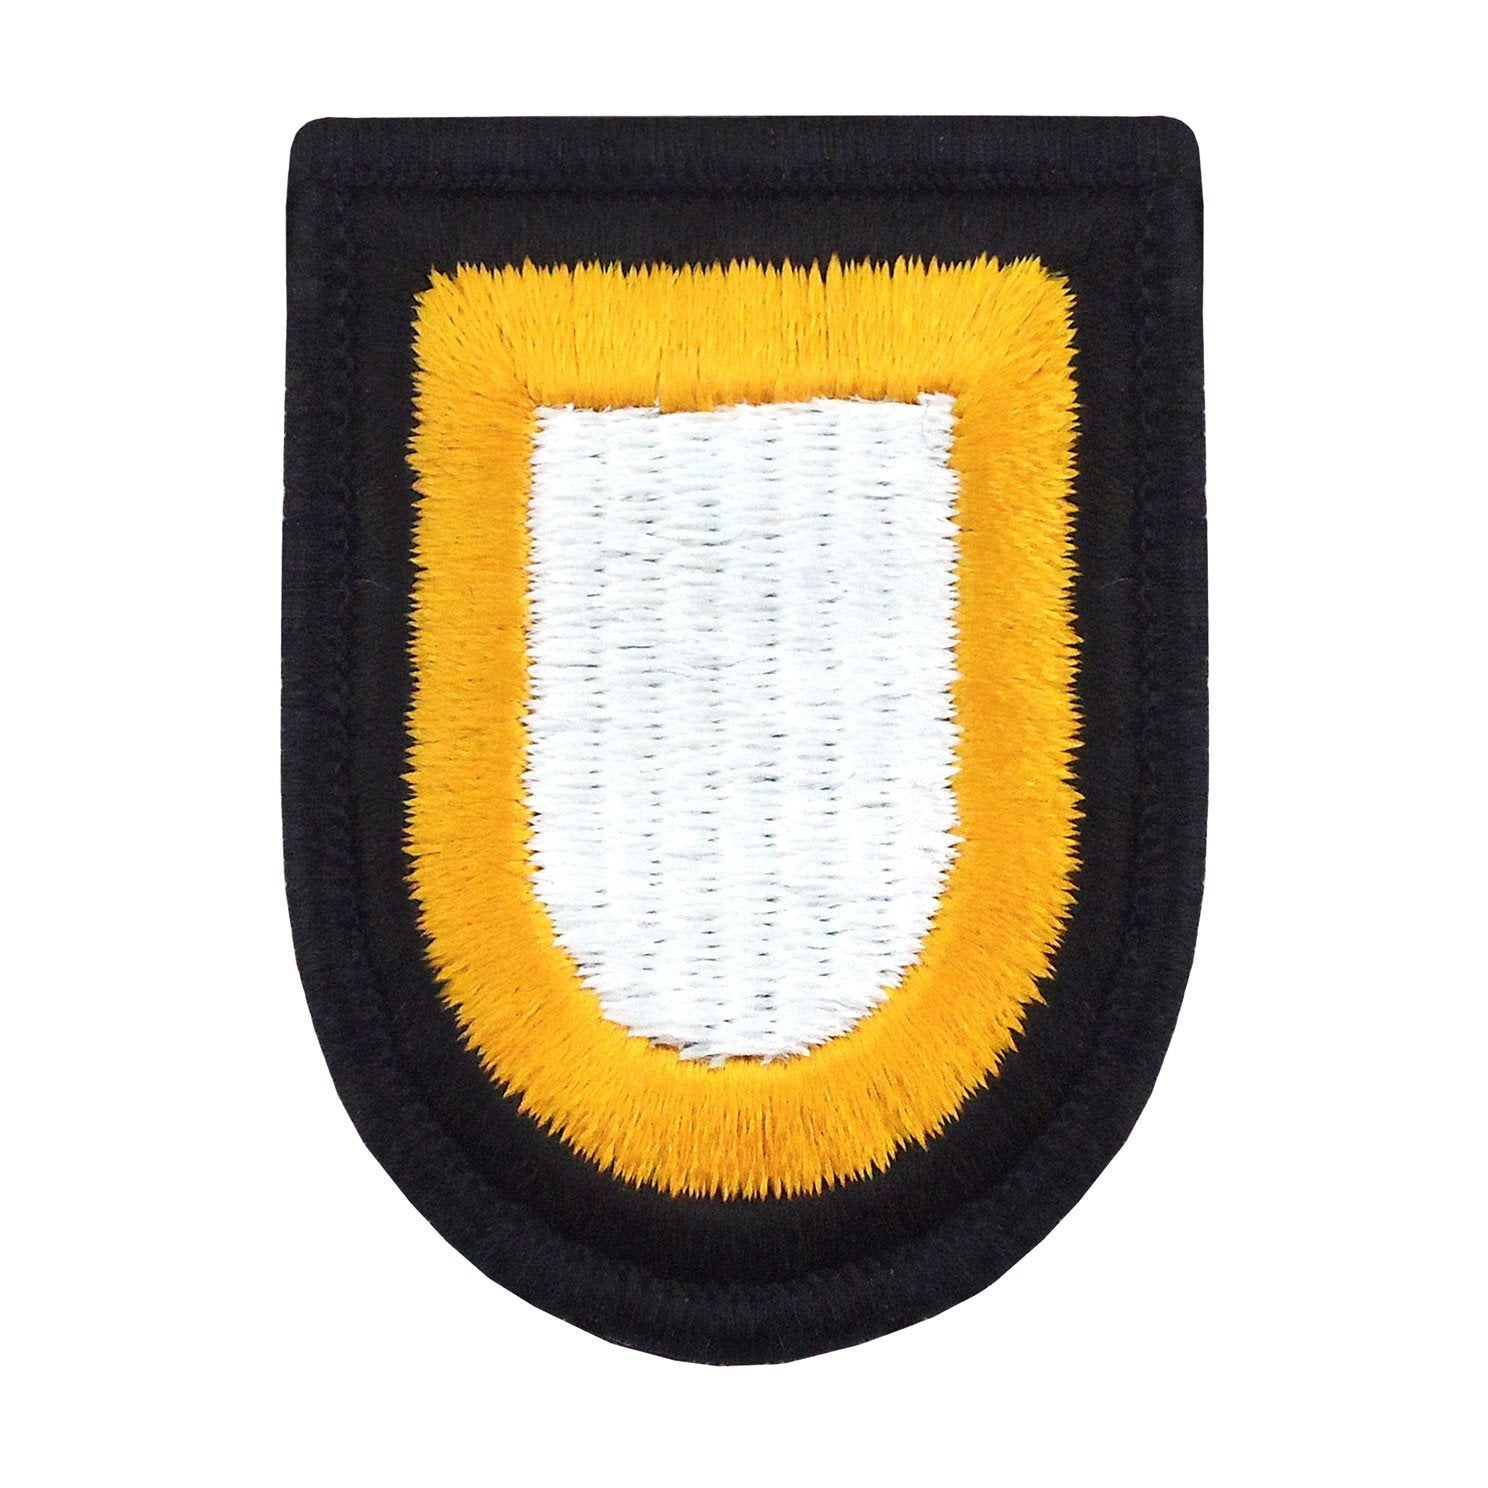 Patches and Service Stripes - 101st Airborne Division Beret Flash -   jetcube